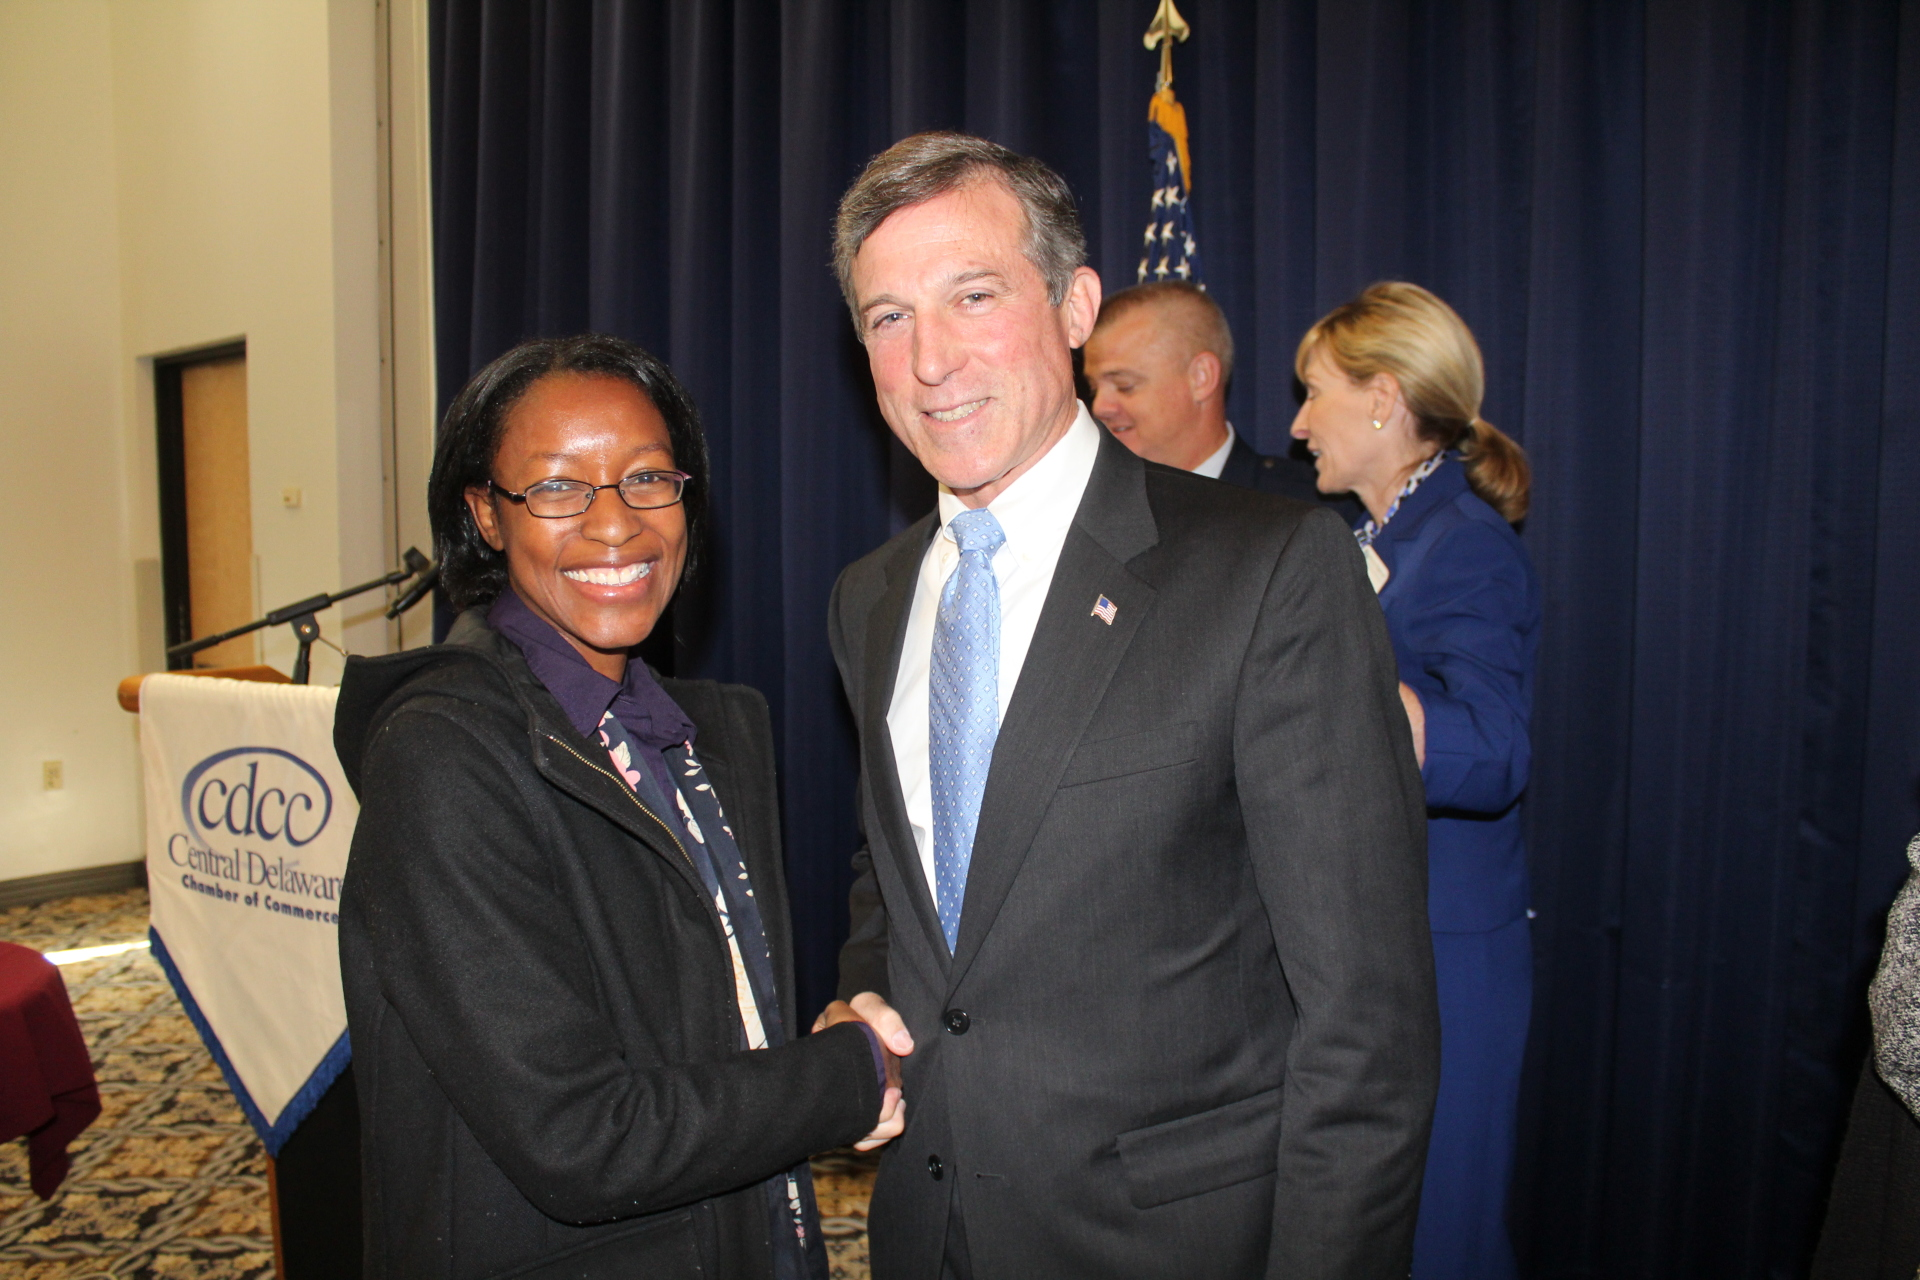 At Dover Air Force Base with Governor John Carney